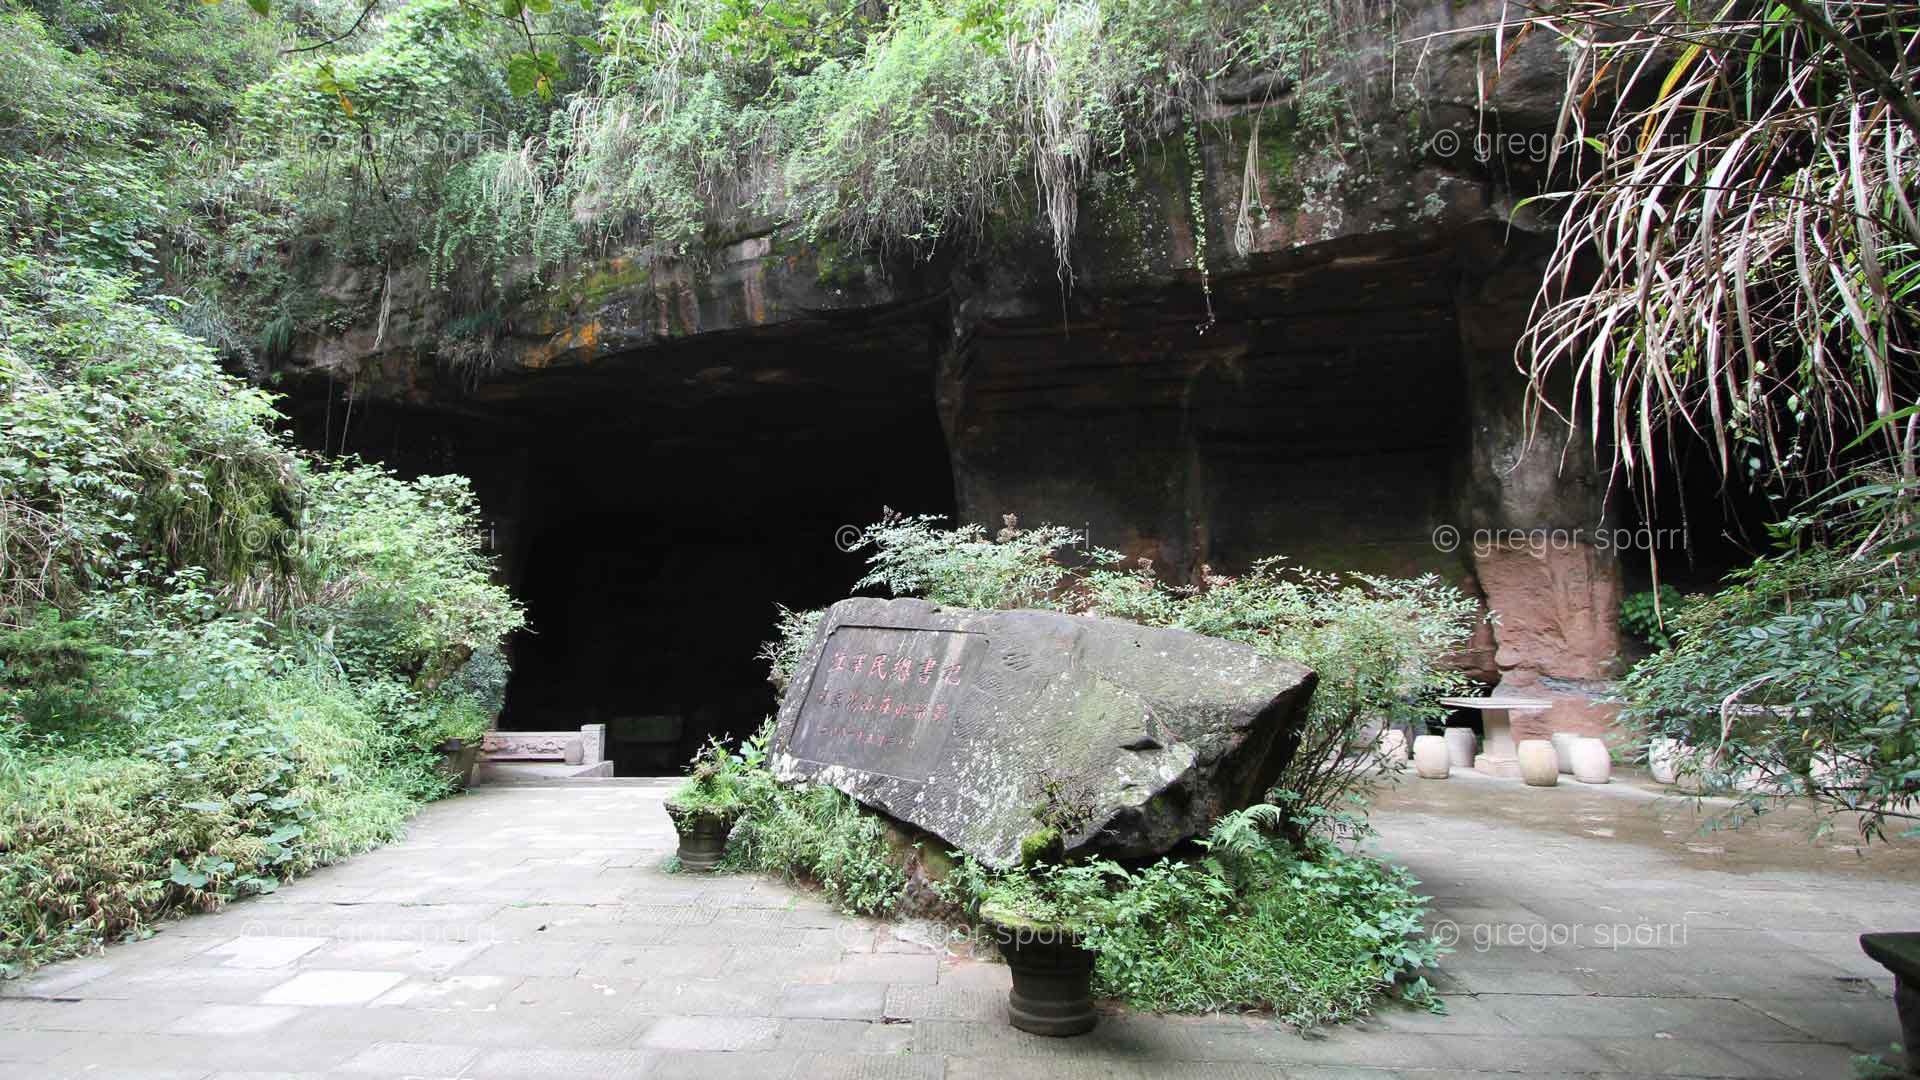 The China Grotto No 35 in Huang Shan (Blumenberg): The entrance today.